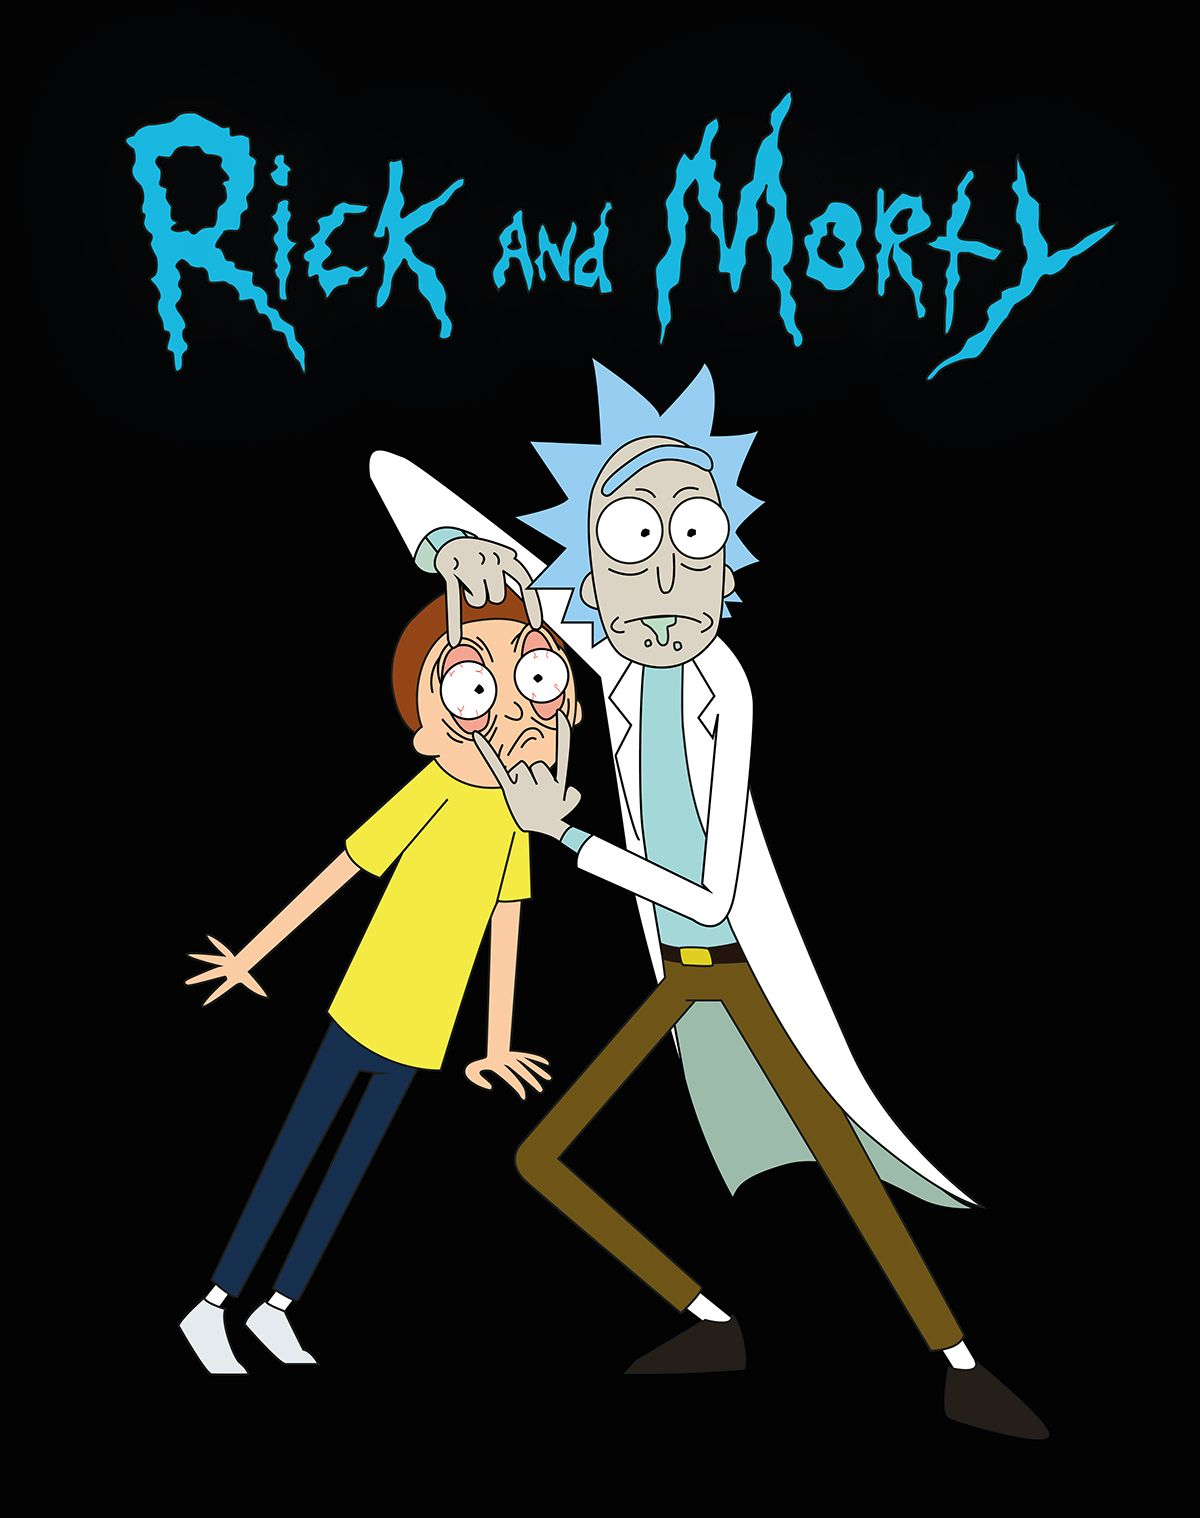 Fan Art Of Rick And Morty Made In Illustrator Cs6 Con Imagenes